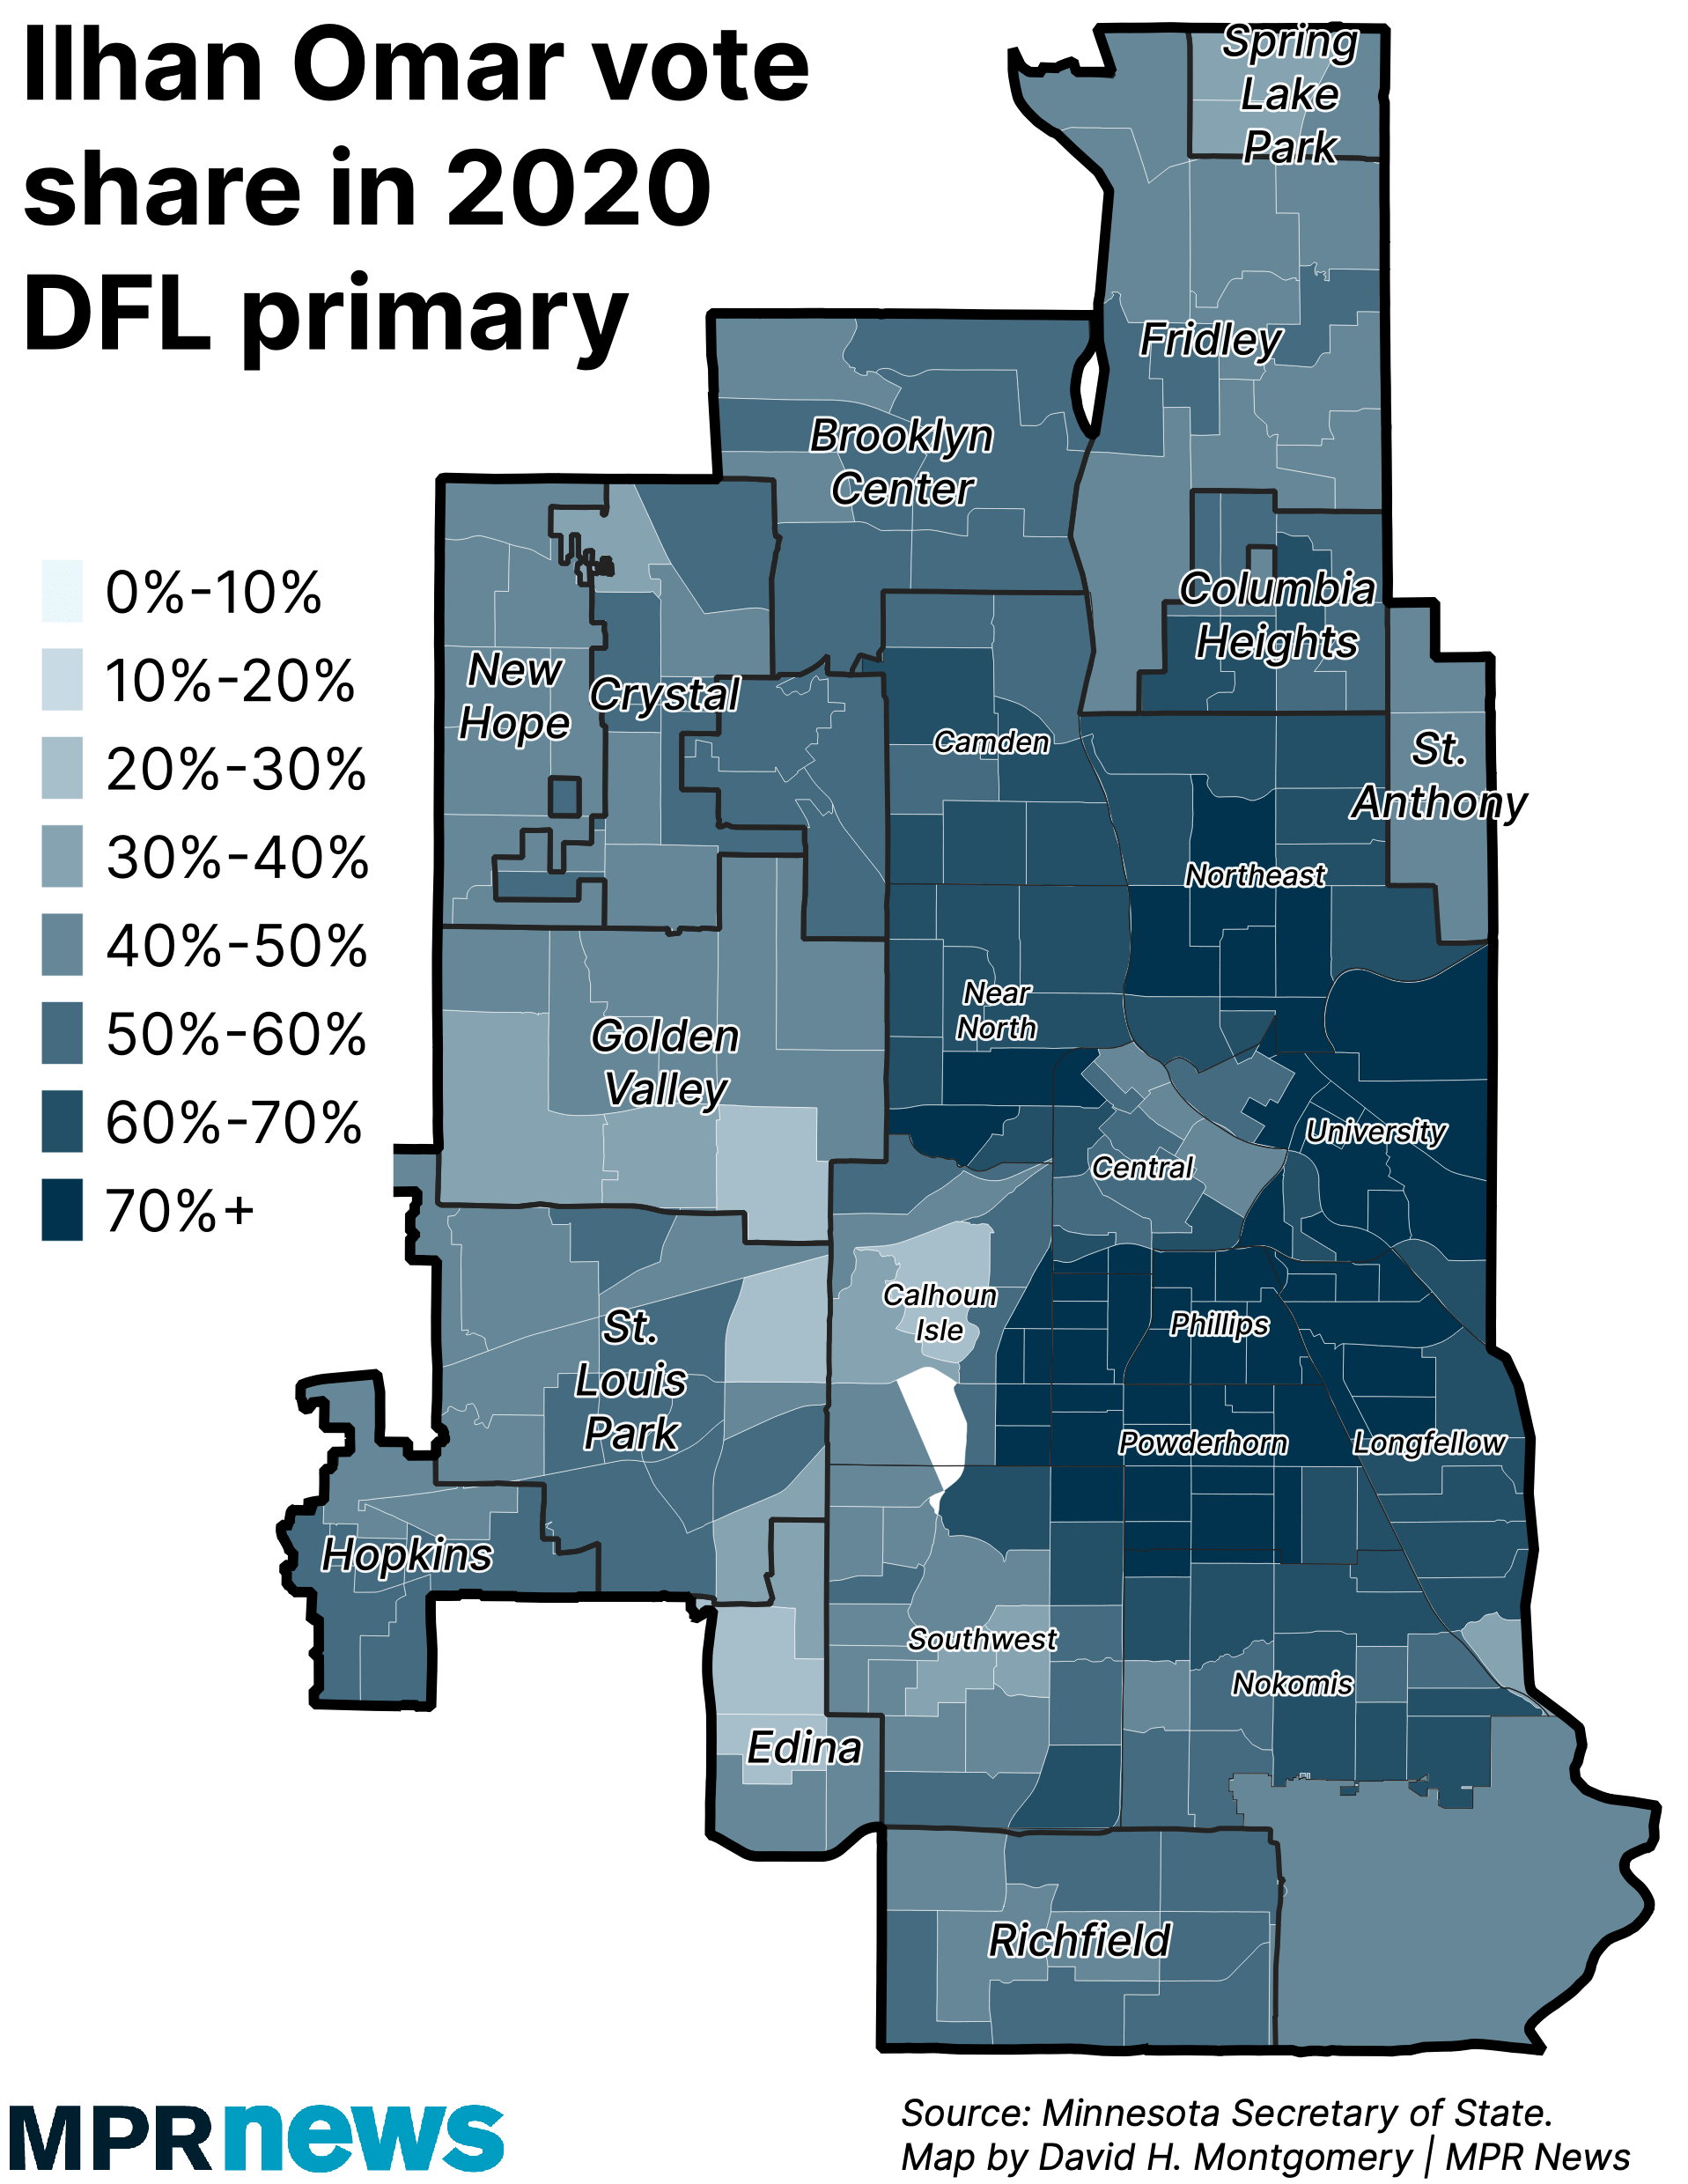 Rep. Ilhan Omar vote share in 2020 DFL primary